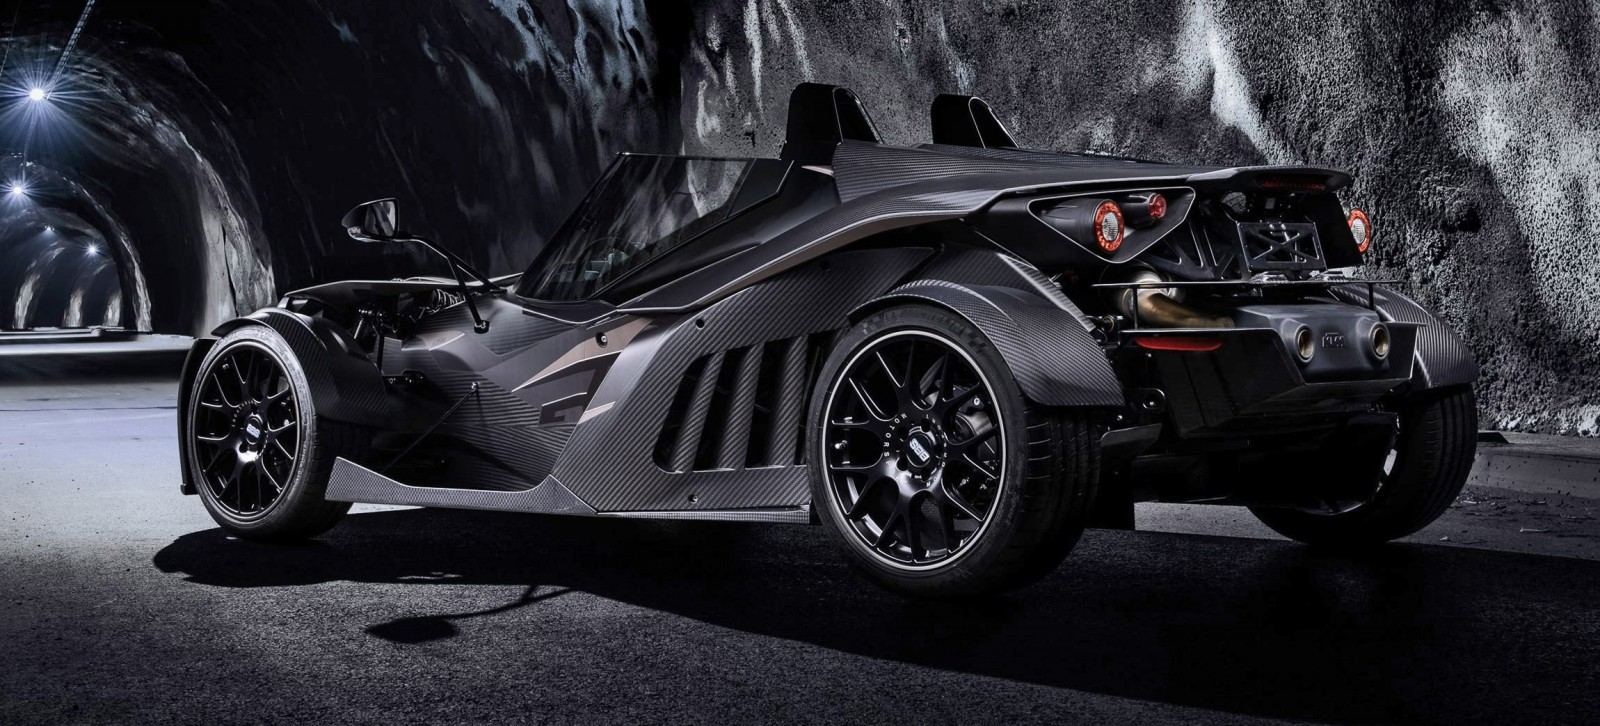 2016 KTM X-Bow GT Black Carbon